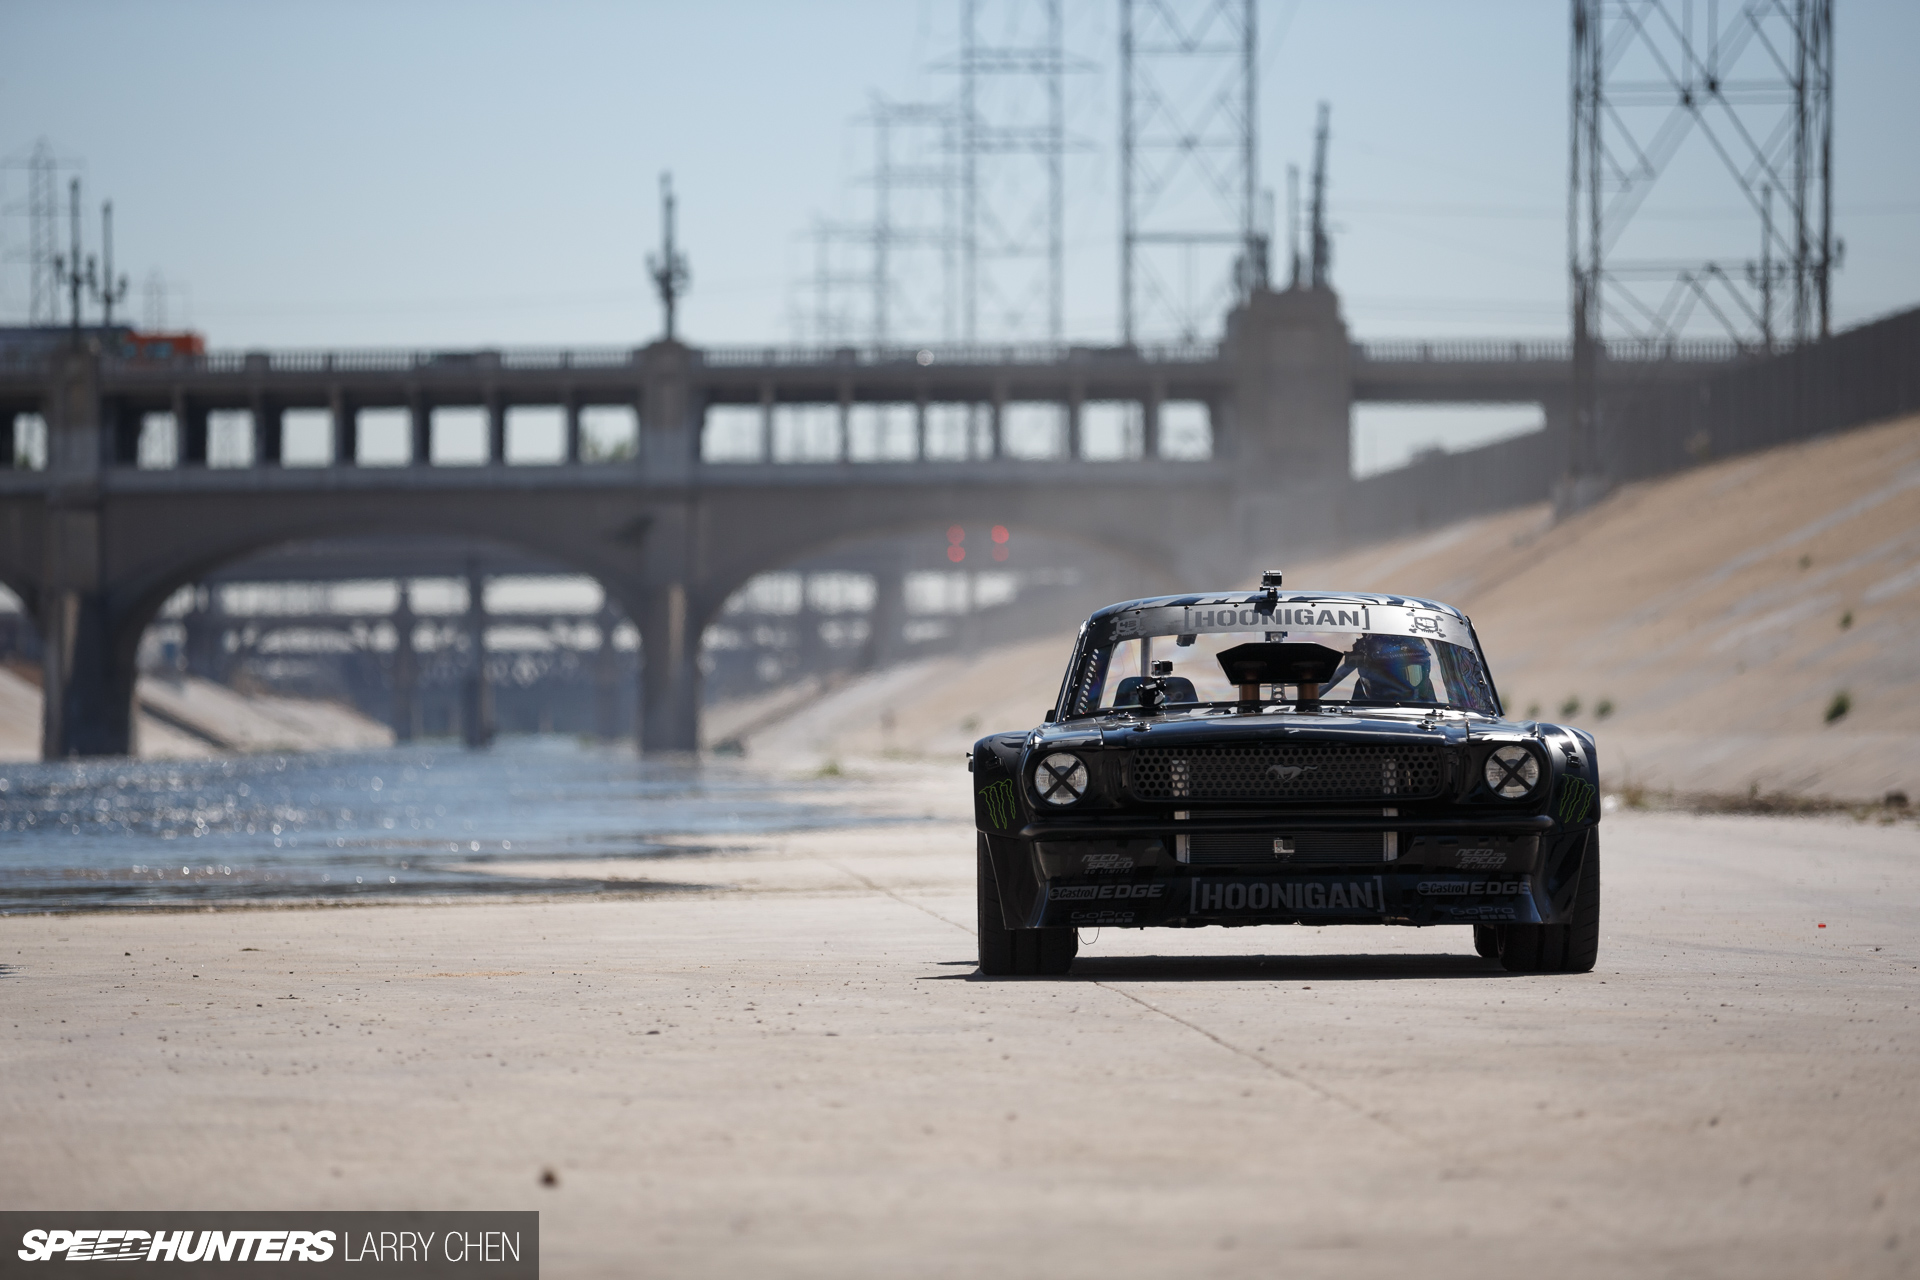 also have to check out this feature on Speedhunters on the Hoonicorn 1920x1280